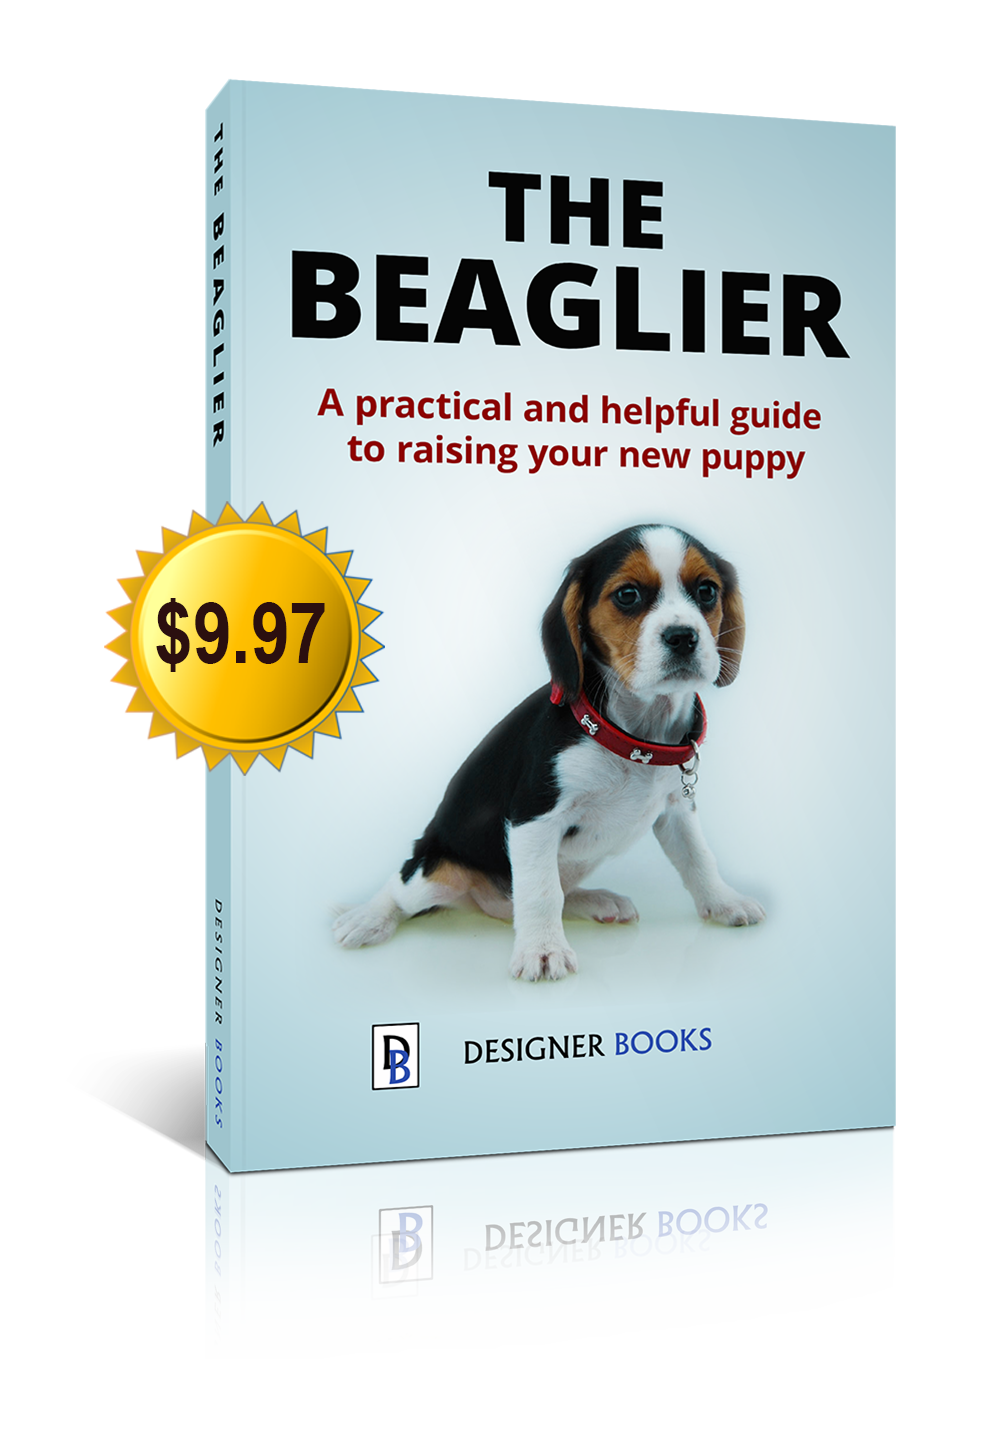 The Beaglier book